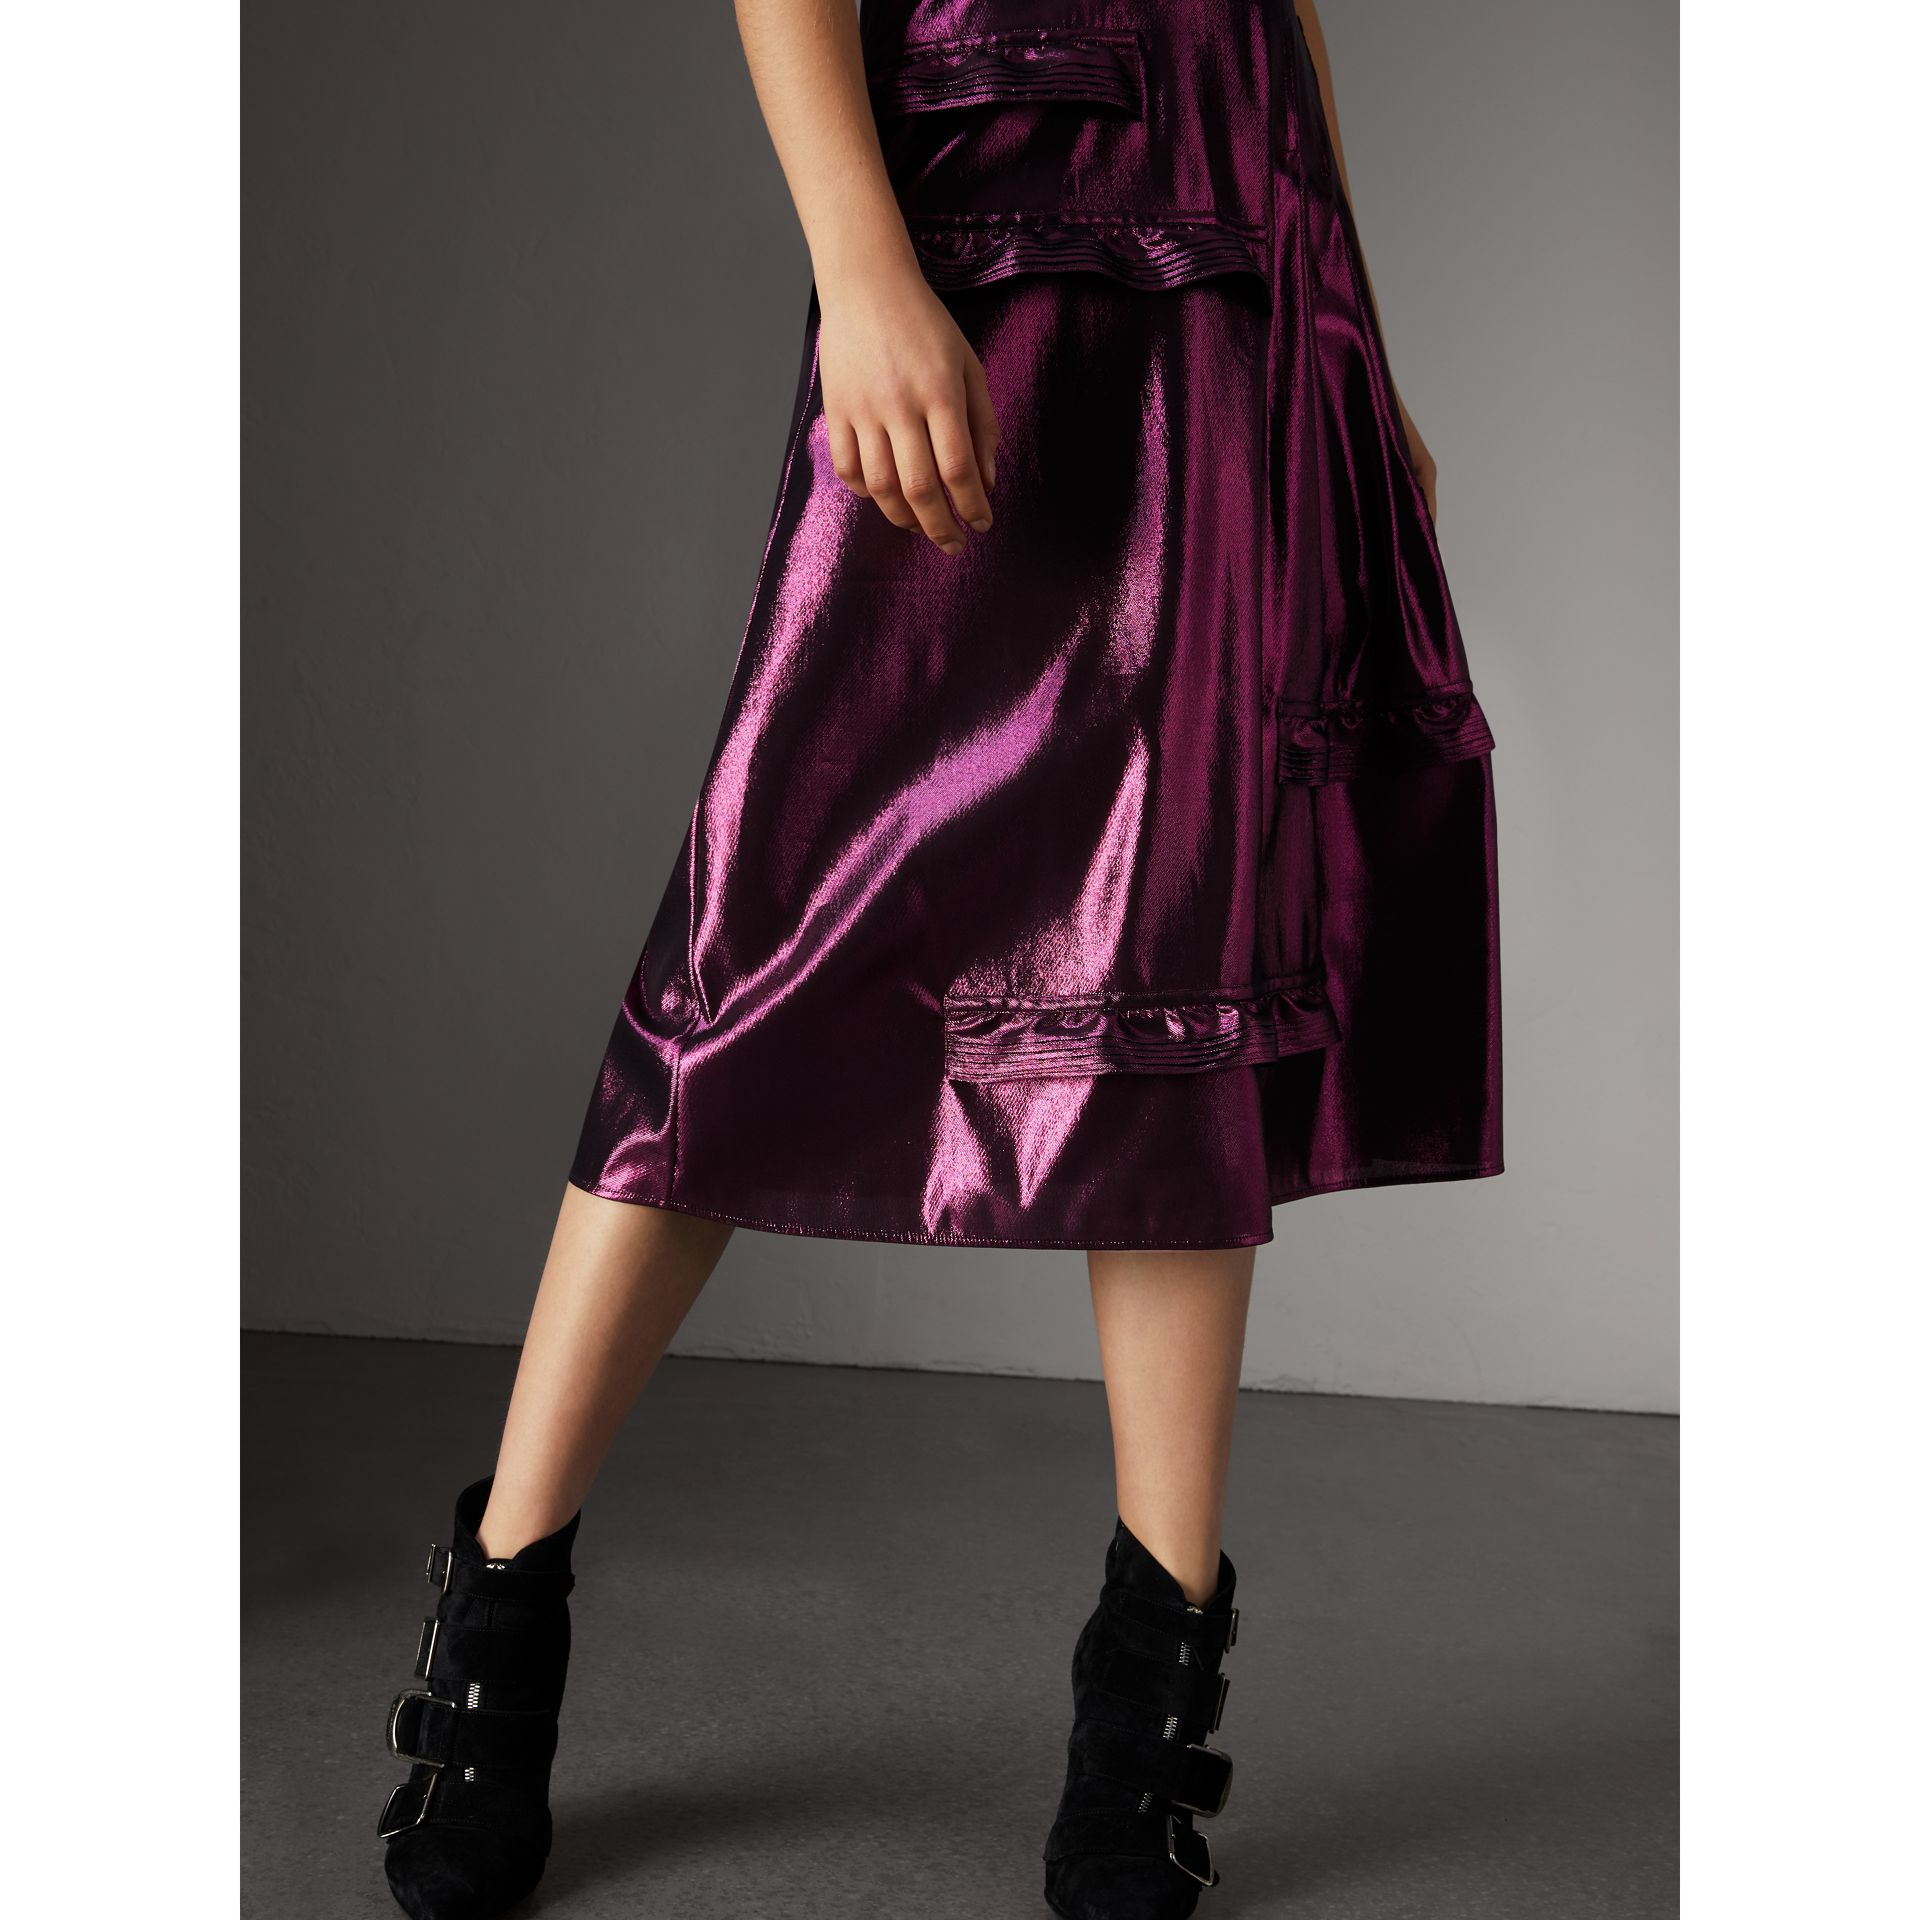 Short-sleeve Ruffle Detail Lamé Dress – Online Exclusive in Bright Fuchsia - Women | Burberry United States - gallery image 1